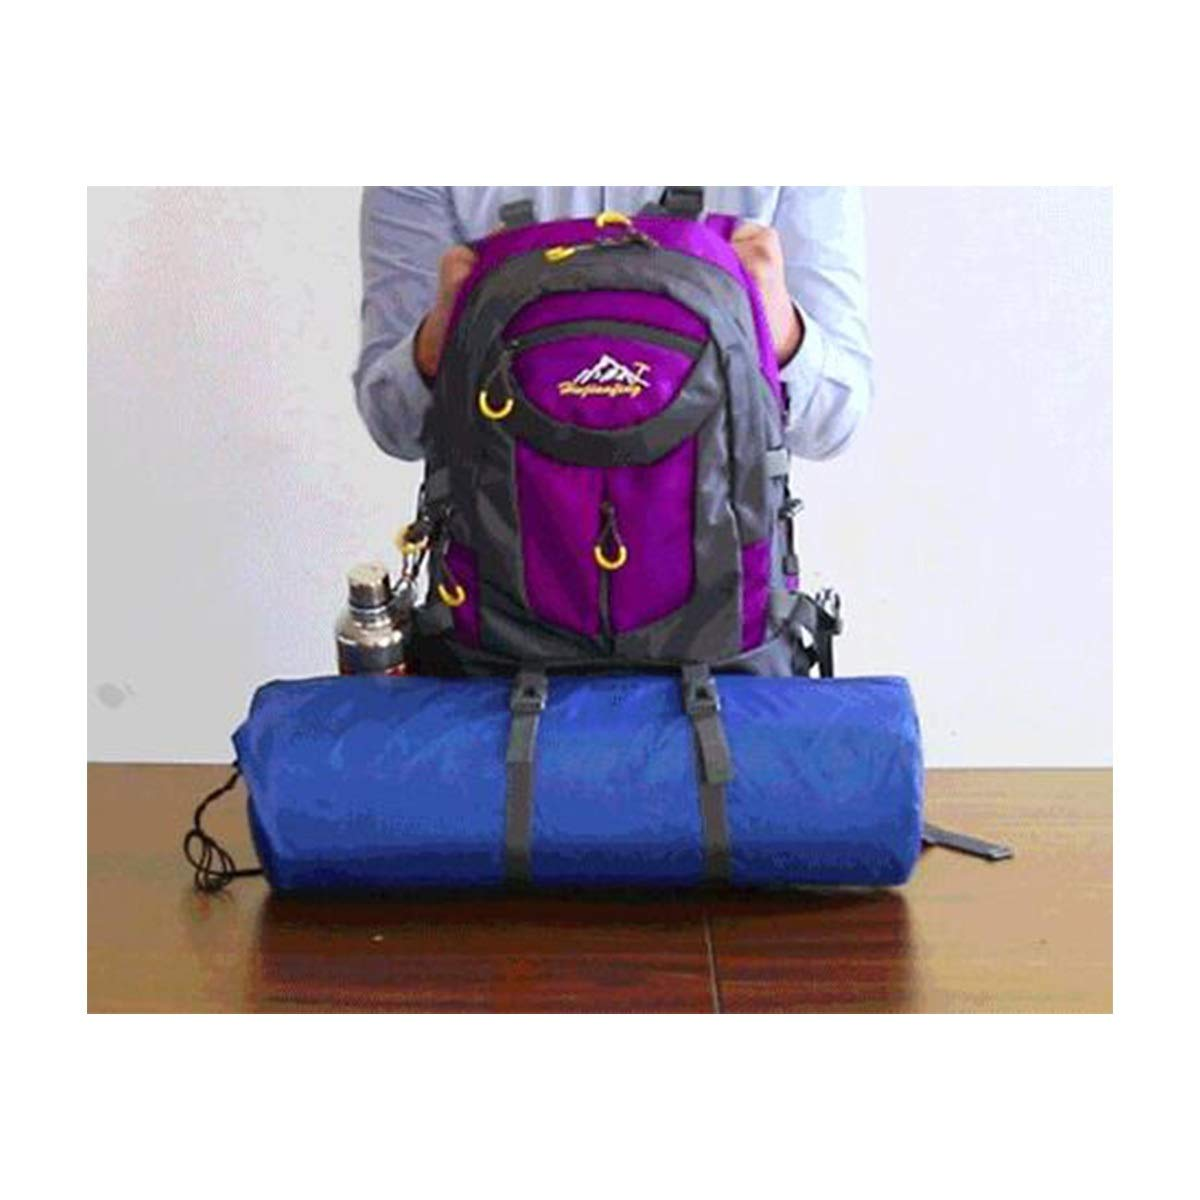 Outdoor Hiking Bag for Men and Women Waterproof Travel Backpack -60L Capacity : 60L, Color : Purple Haoyushangmao Backpack Multi-Color Optional Latest Models